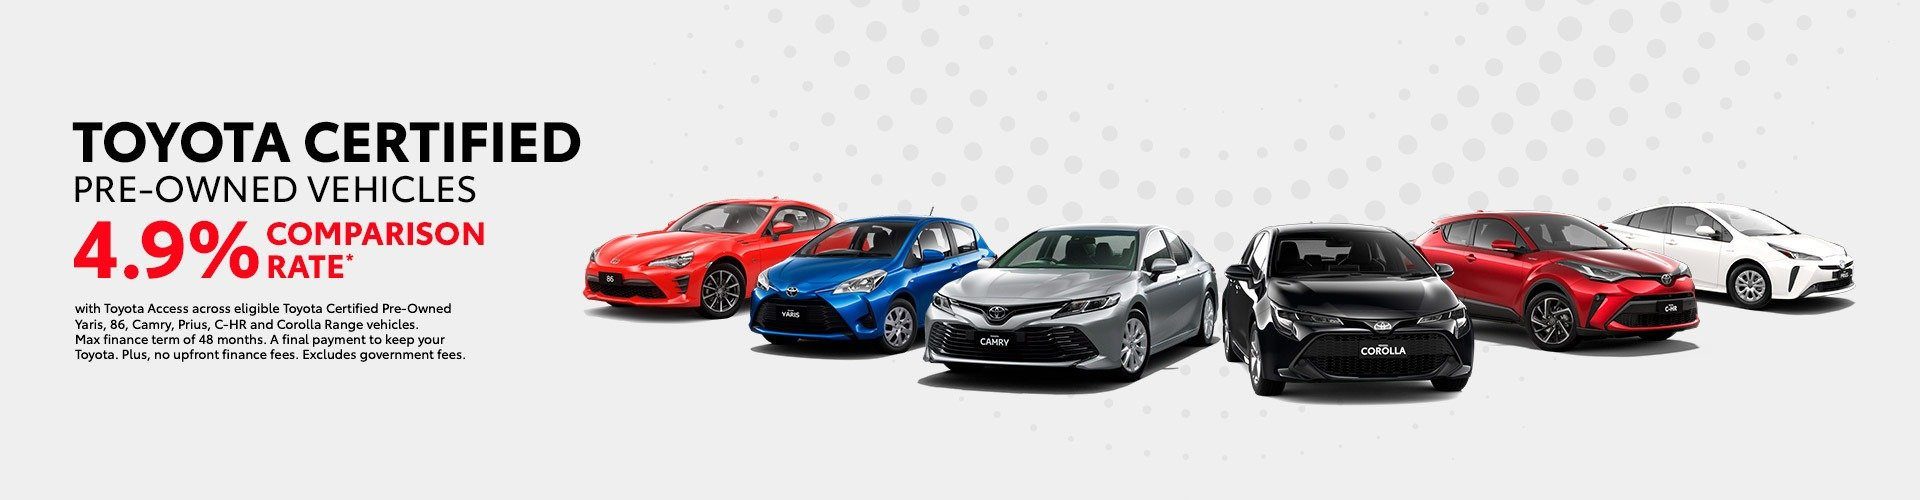 Galleria Toyota - Certified Pre-Owned Vehicle 4.9% Finance Offer